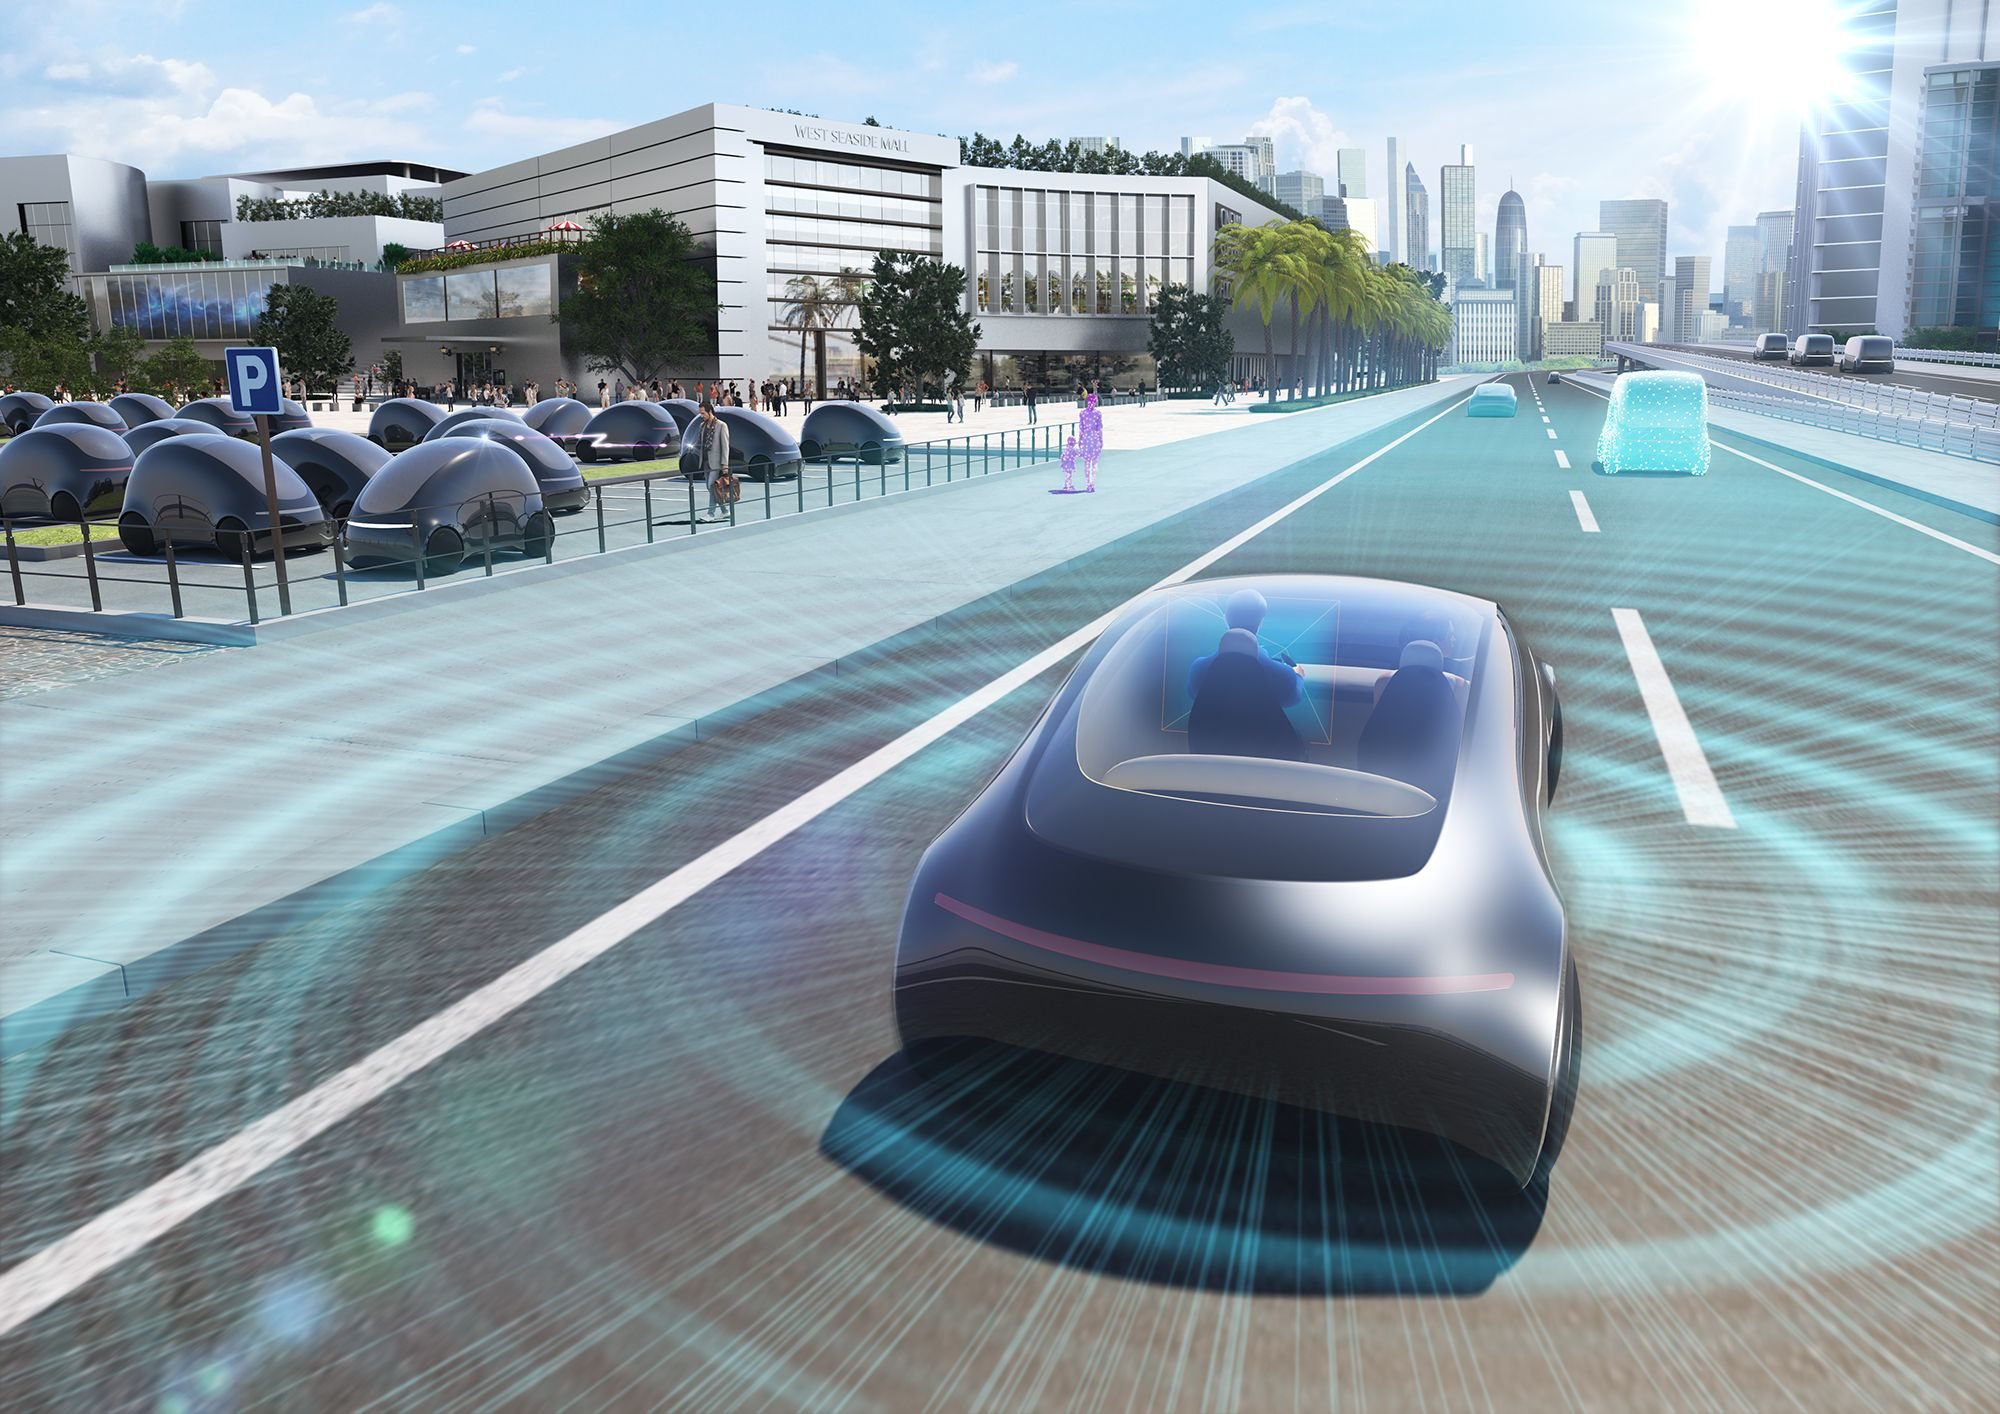 Autonomous driving inches closer as DENSO Corp. links up with Israel's Foretellix